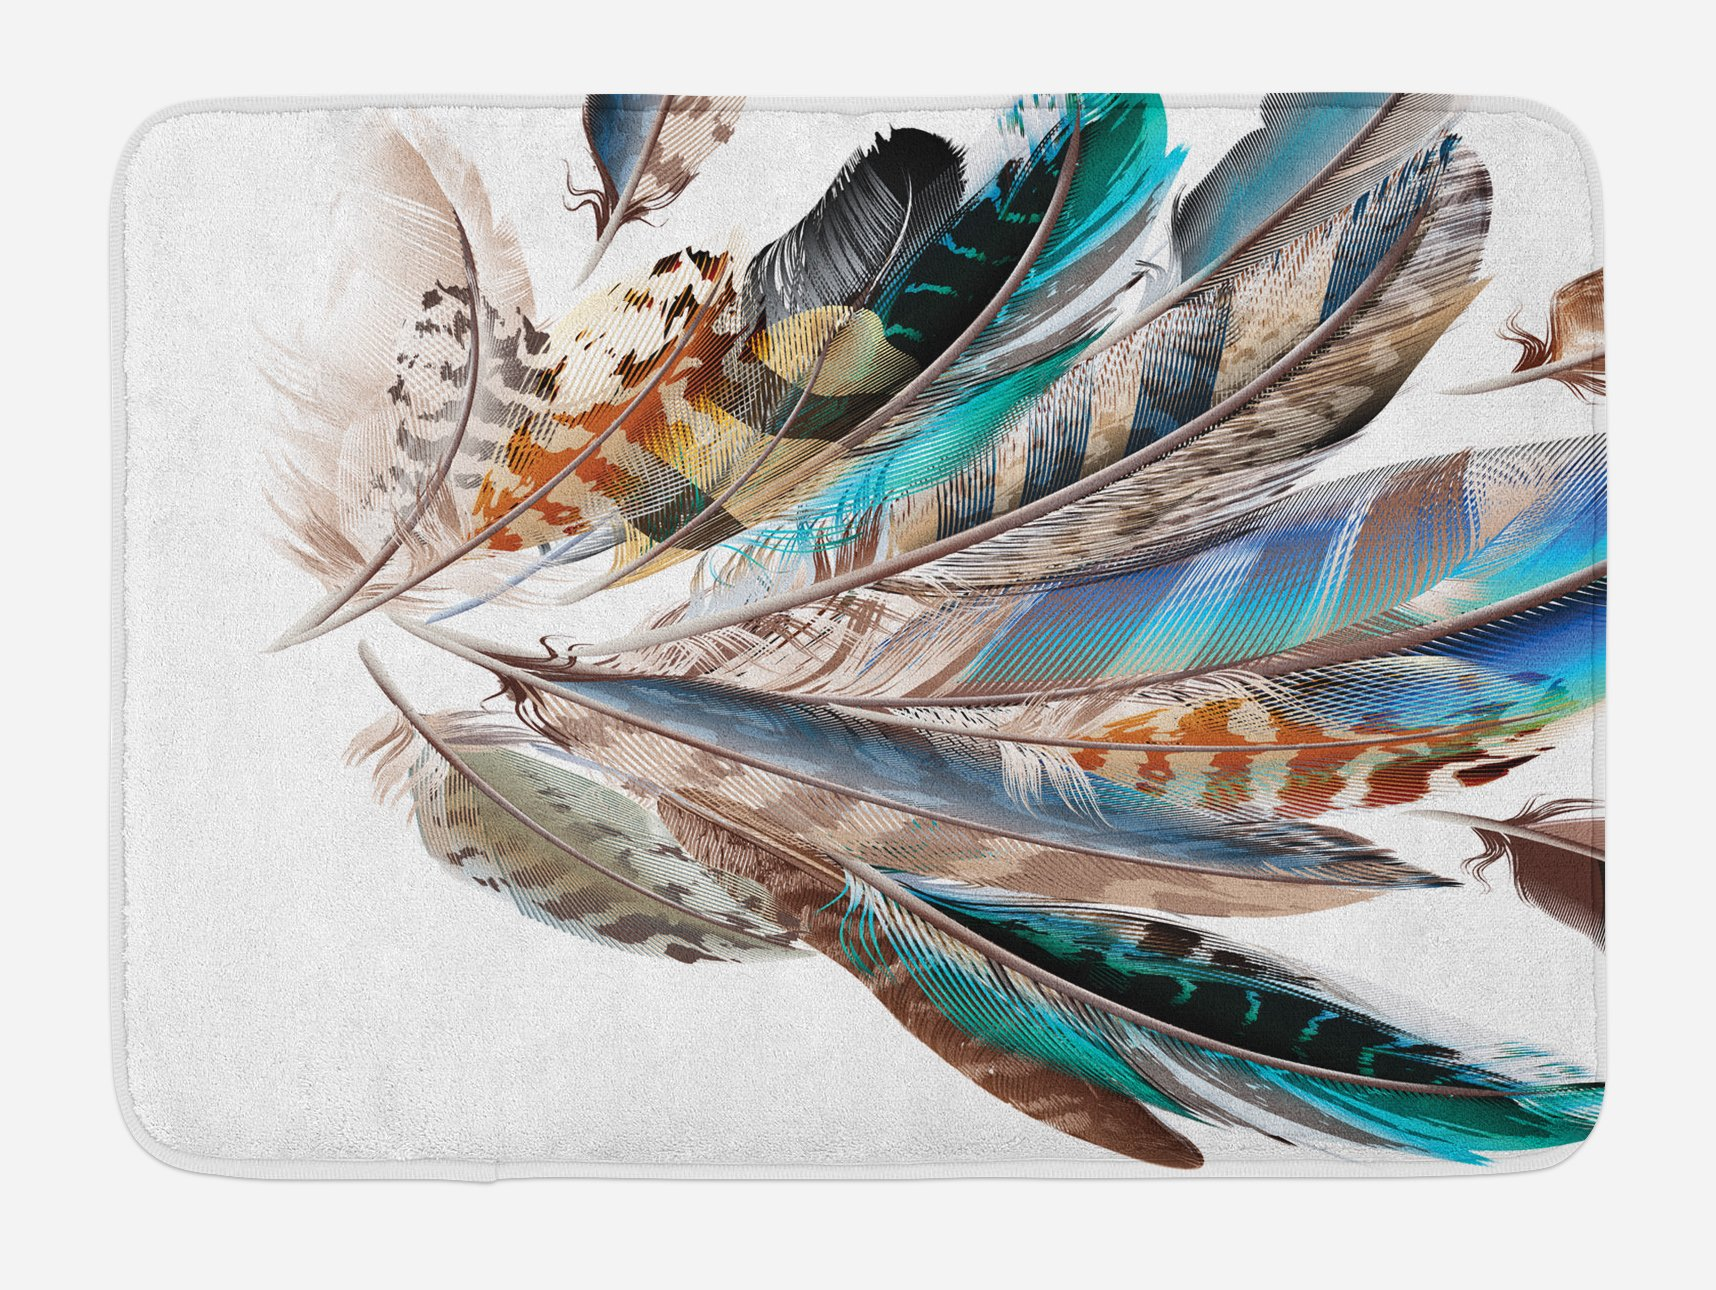 Ambesonne Feathers Bath Mat, Vaned Types and Natal Contour Flight Bird Feathers and Animal Skin Element Print, Plush Bathroom Decor Mat with Non Slip Backing, 29.5 W X 17.5 W Inches, Teal Brown